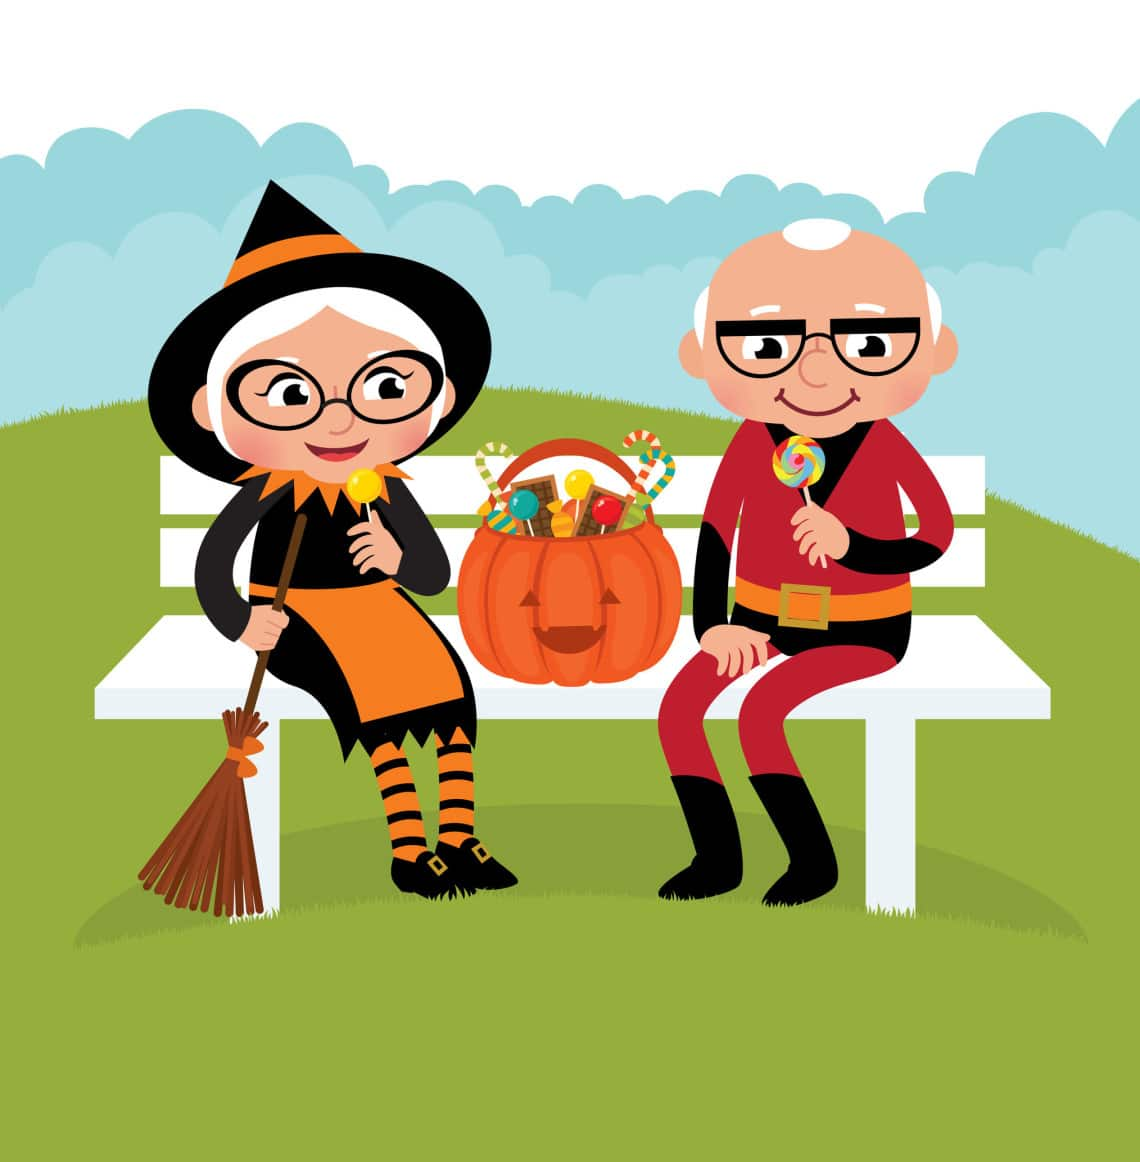 activities fun halloween ideas for seniors 32211926_l 1140x1162